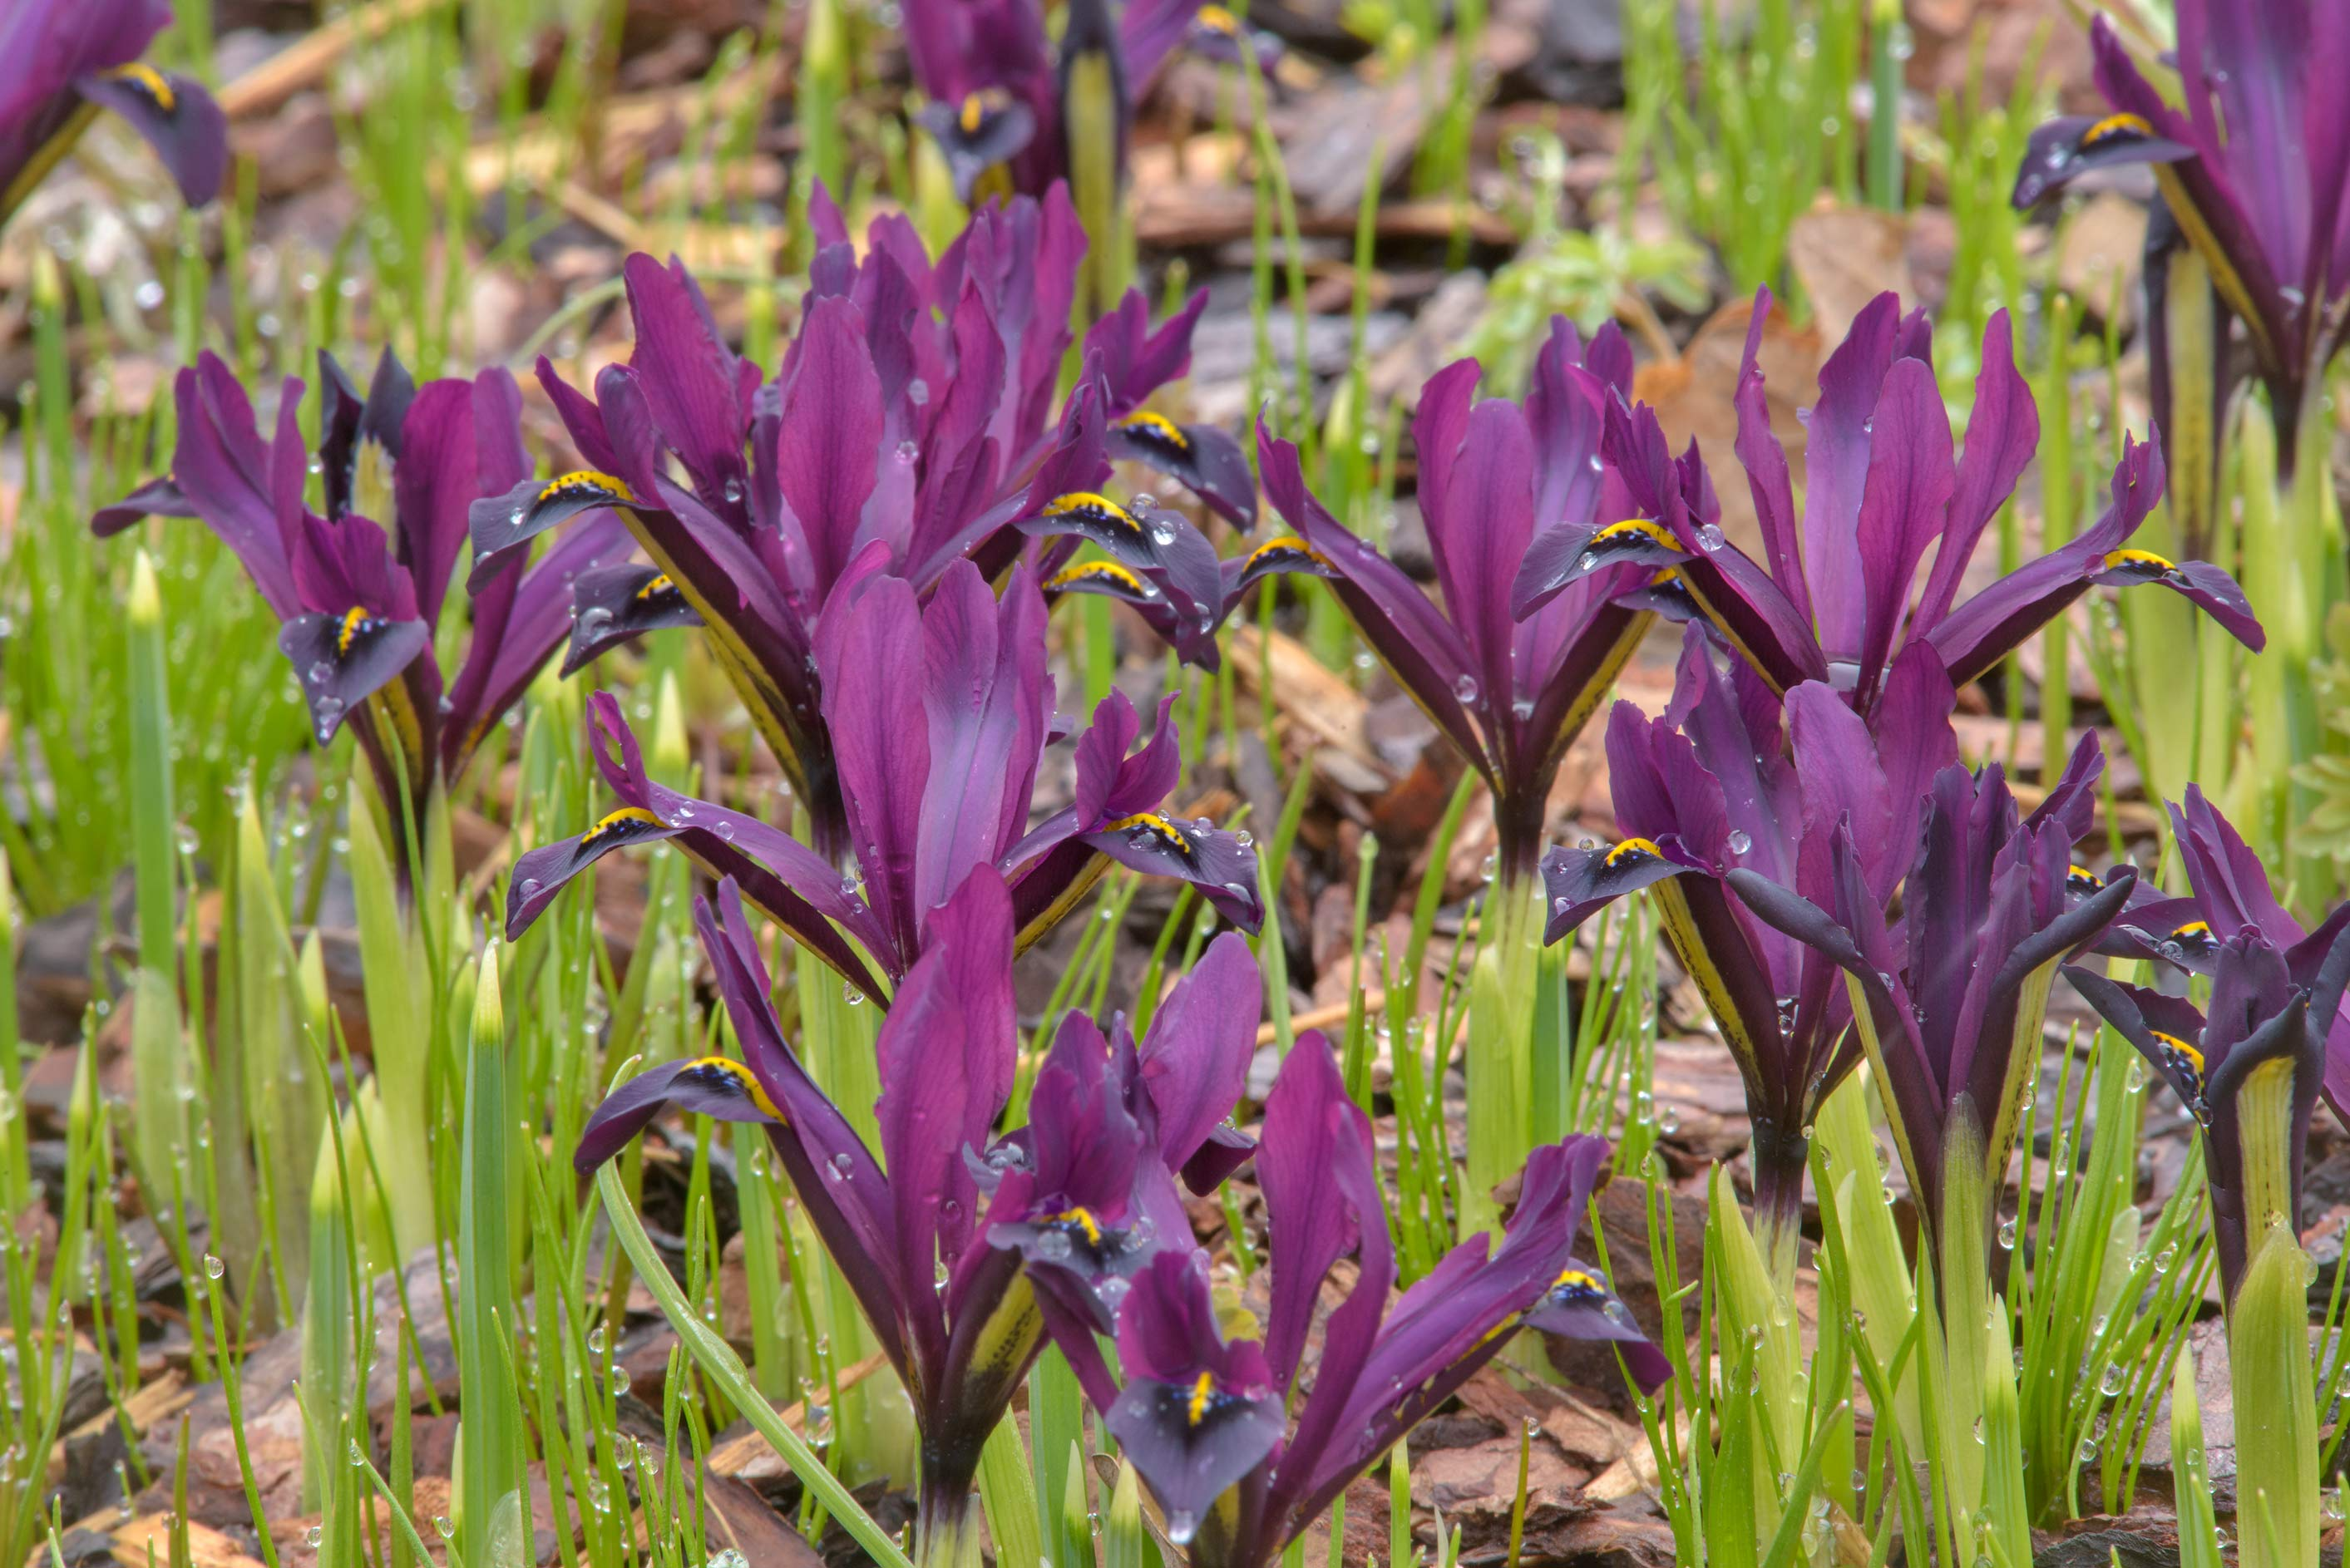 Violet iris flowers (Iridodictyum) in Botanic...Institute. St.Petersburg, Russia